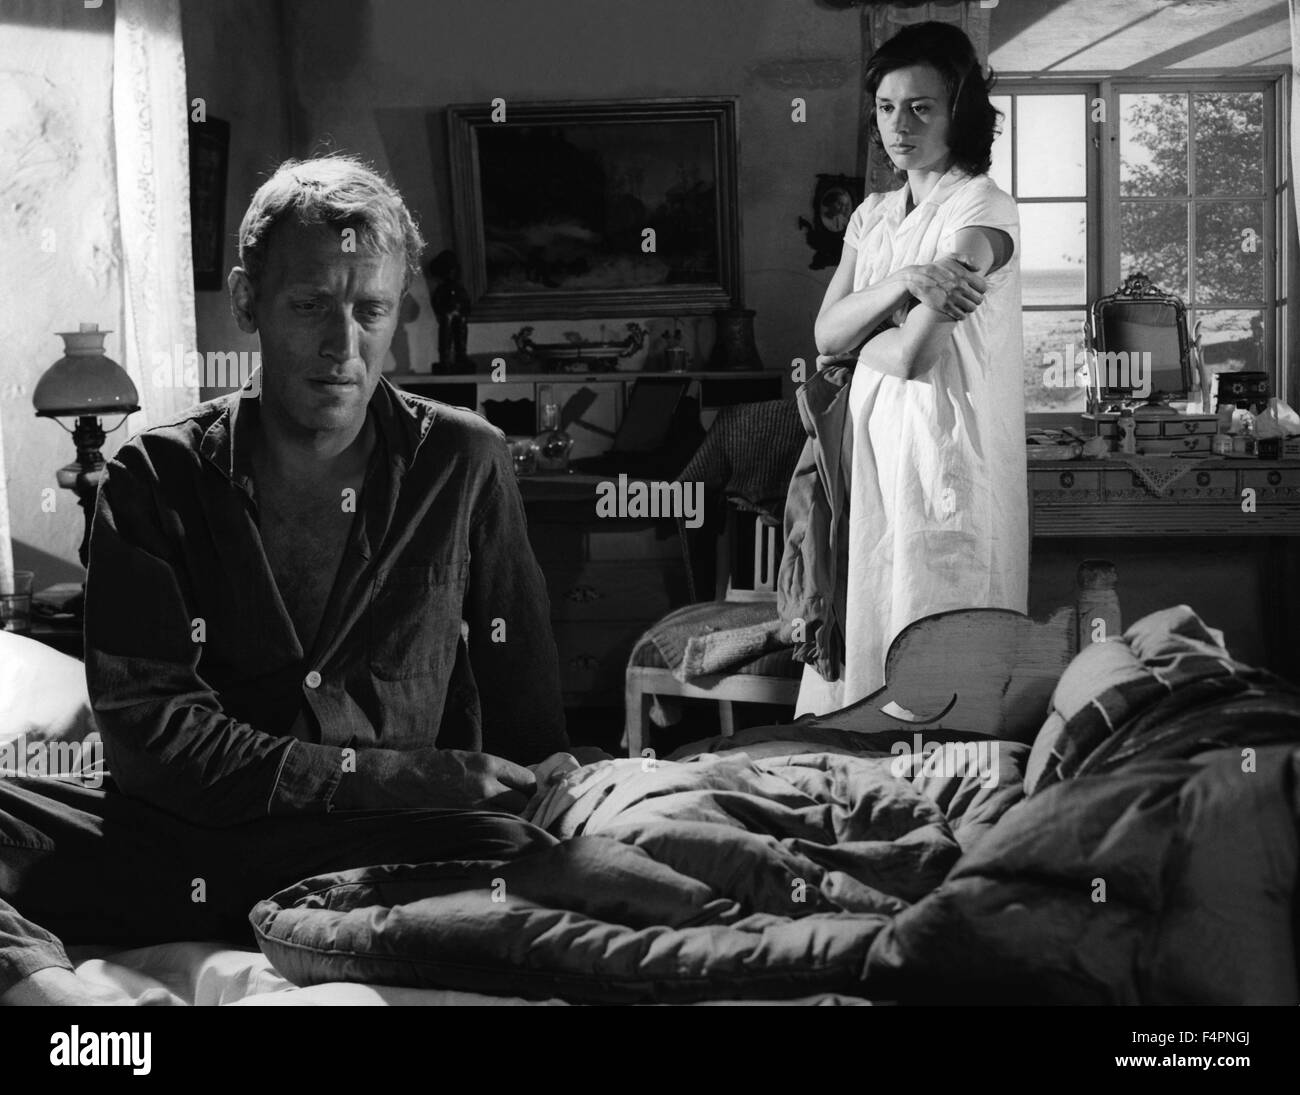 Max von Sydow and Harriet Andersson / Through a Glass Darkly / 1961 directed by Ingmar Bergman Stock Photo